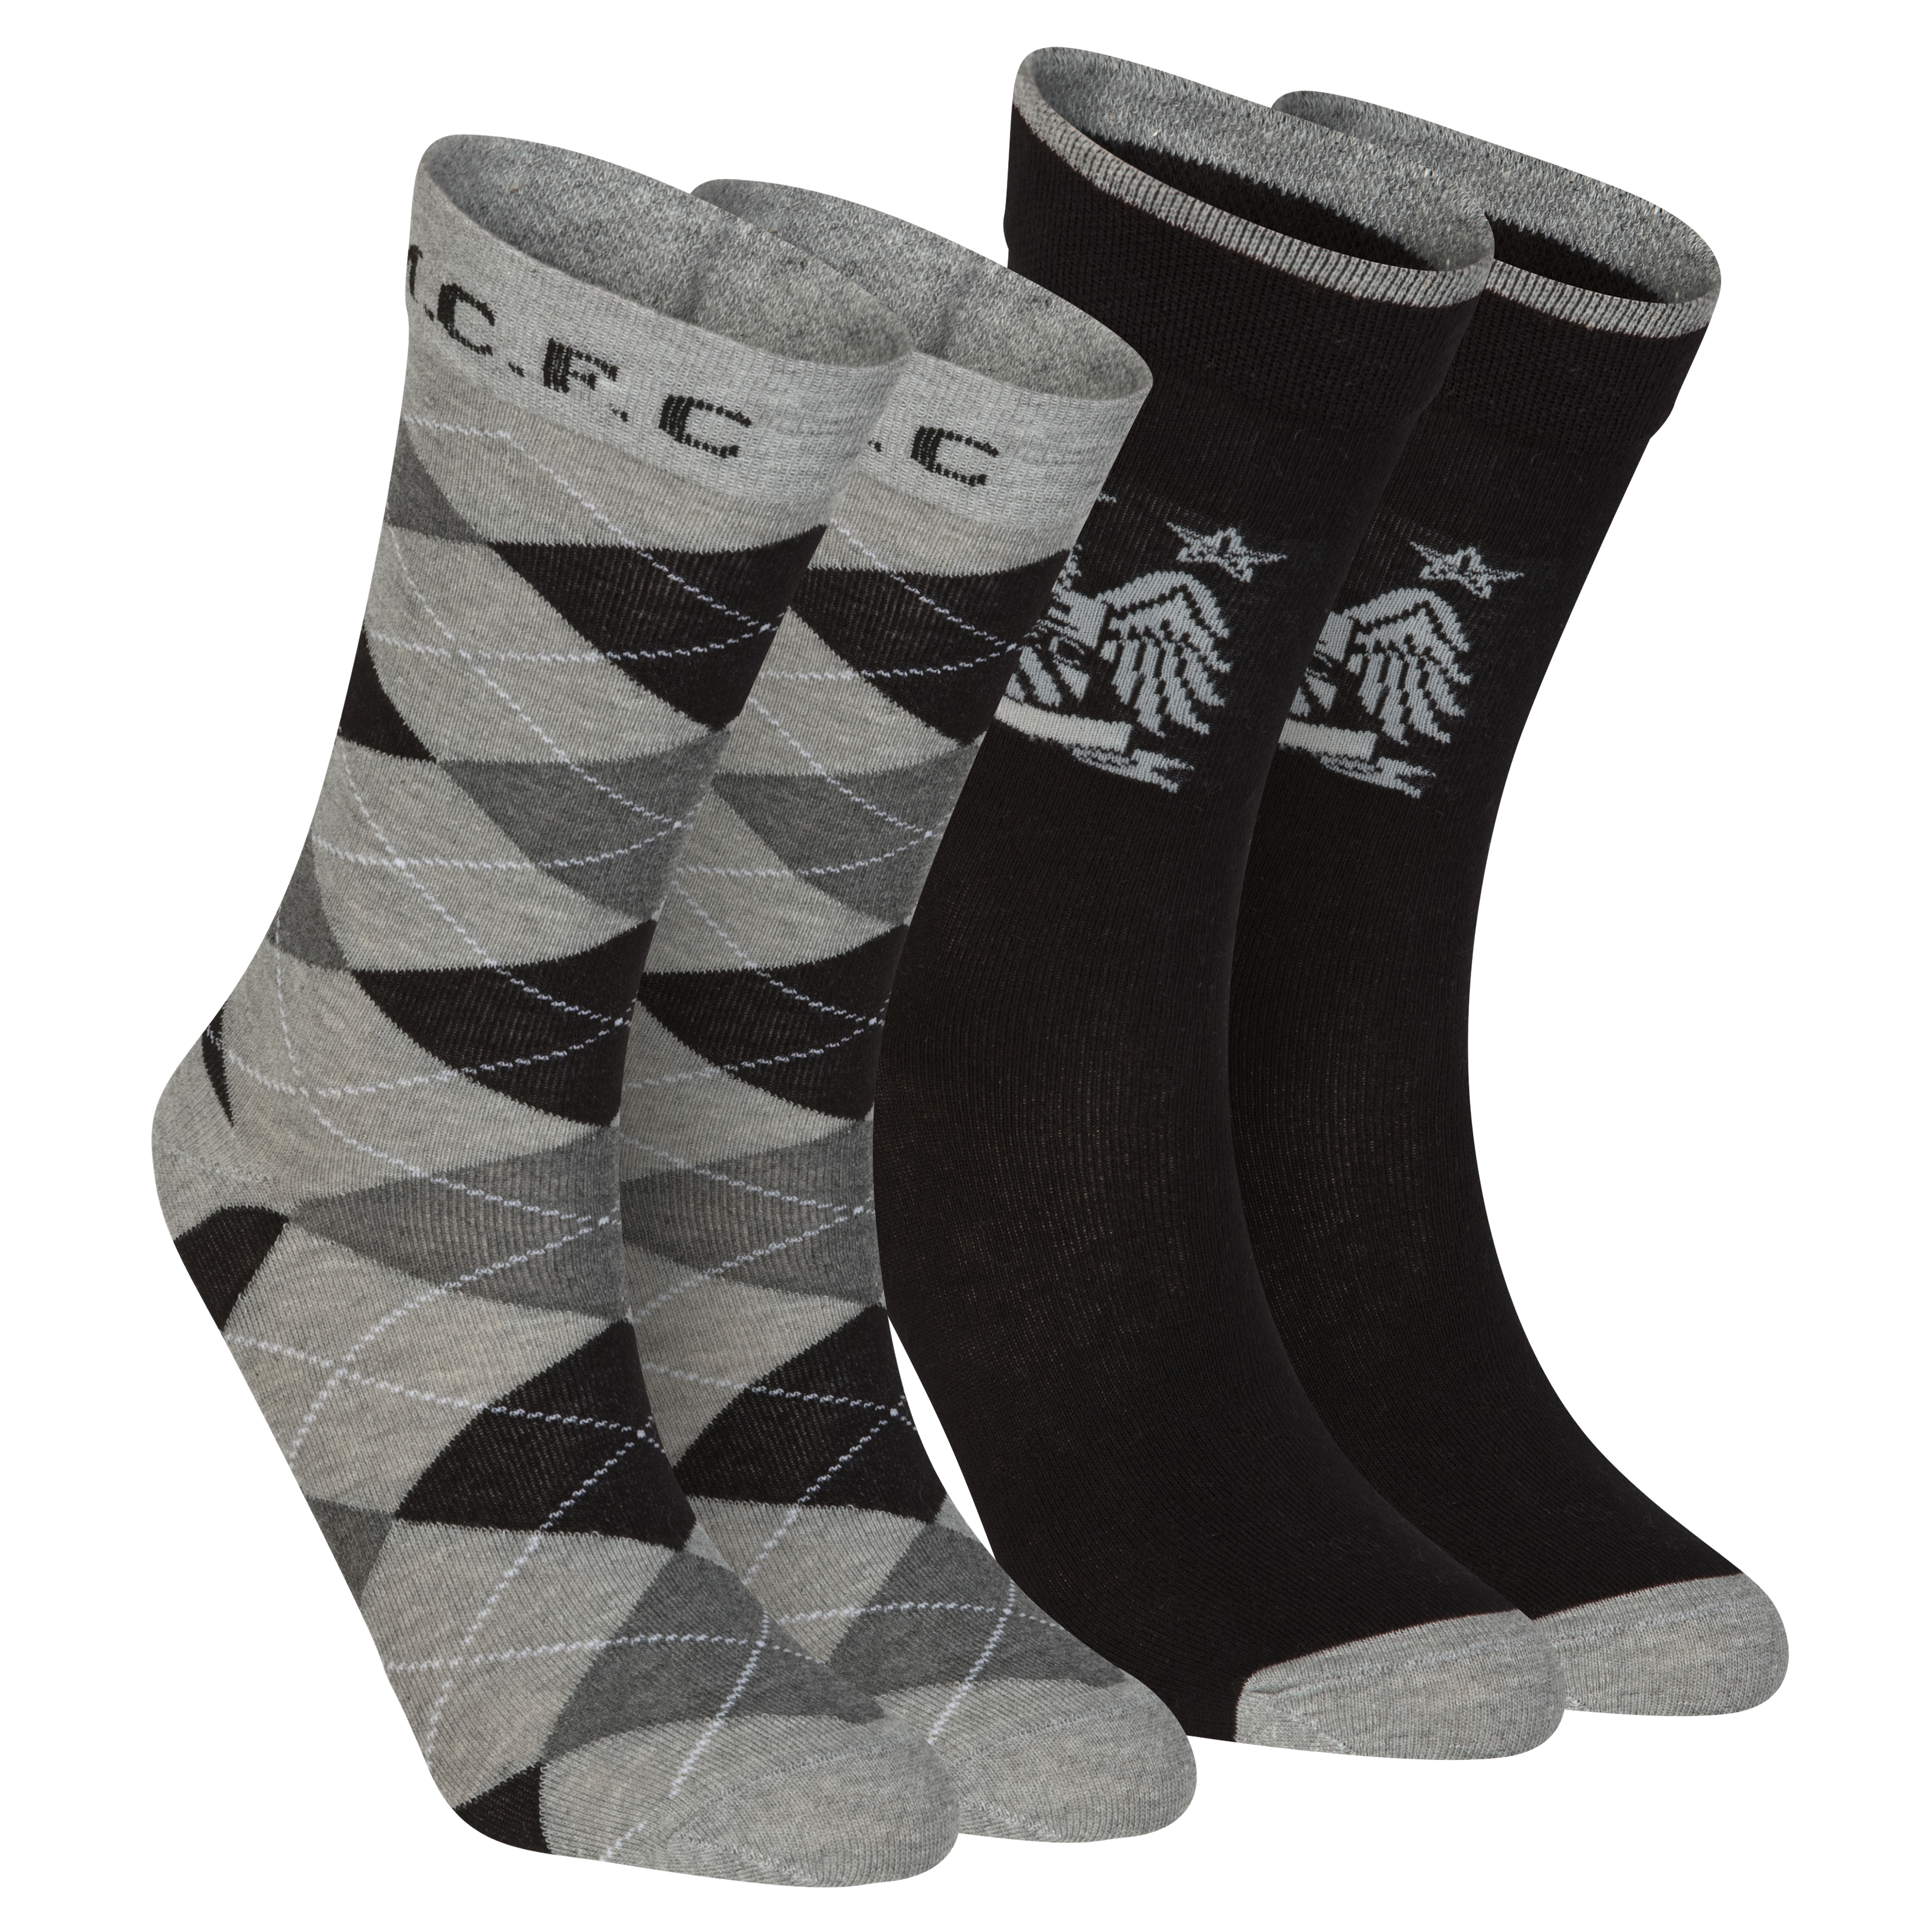 Manchester City Pack of 2 Dress Socks - Black/Grey - Boys